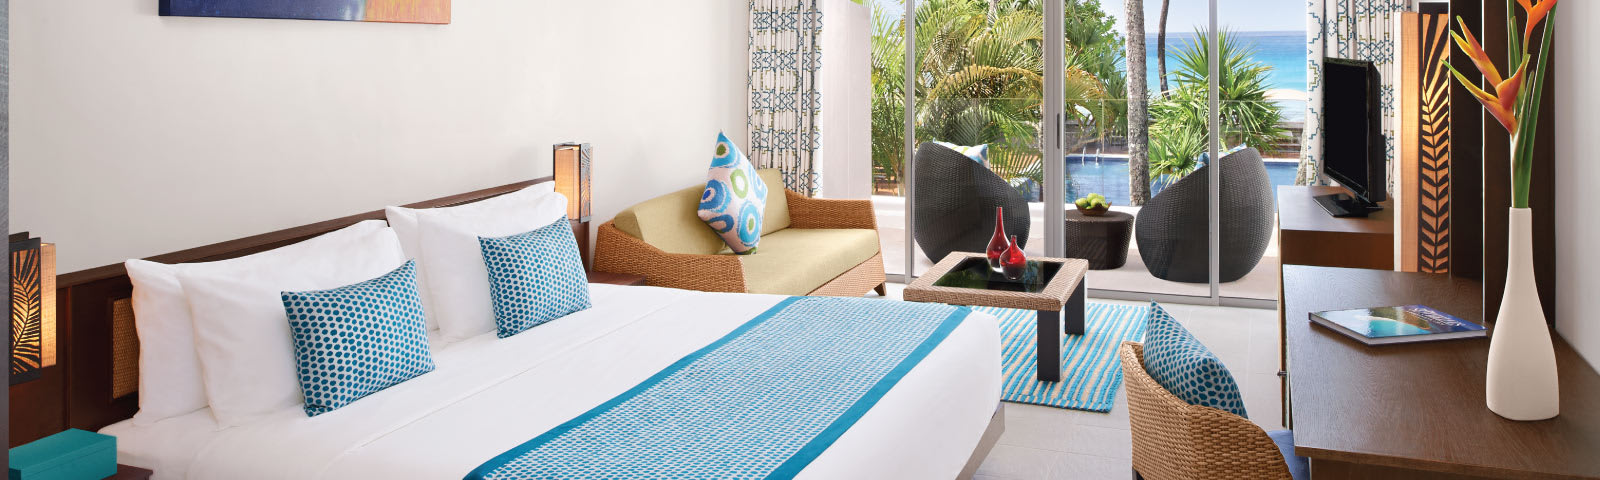 Special Seychelles Hotel Deals on accommodation